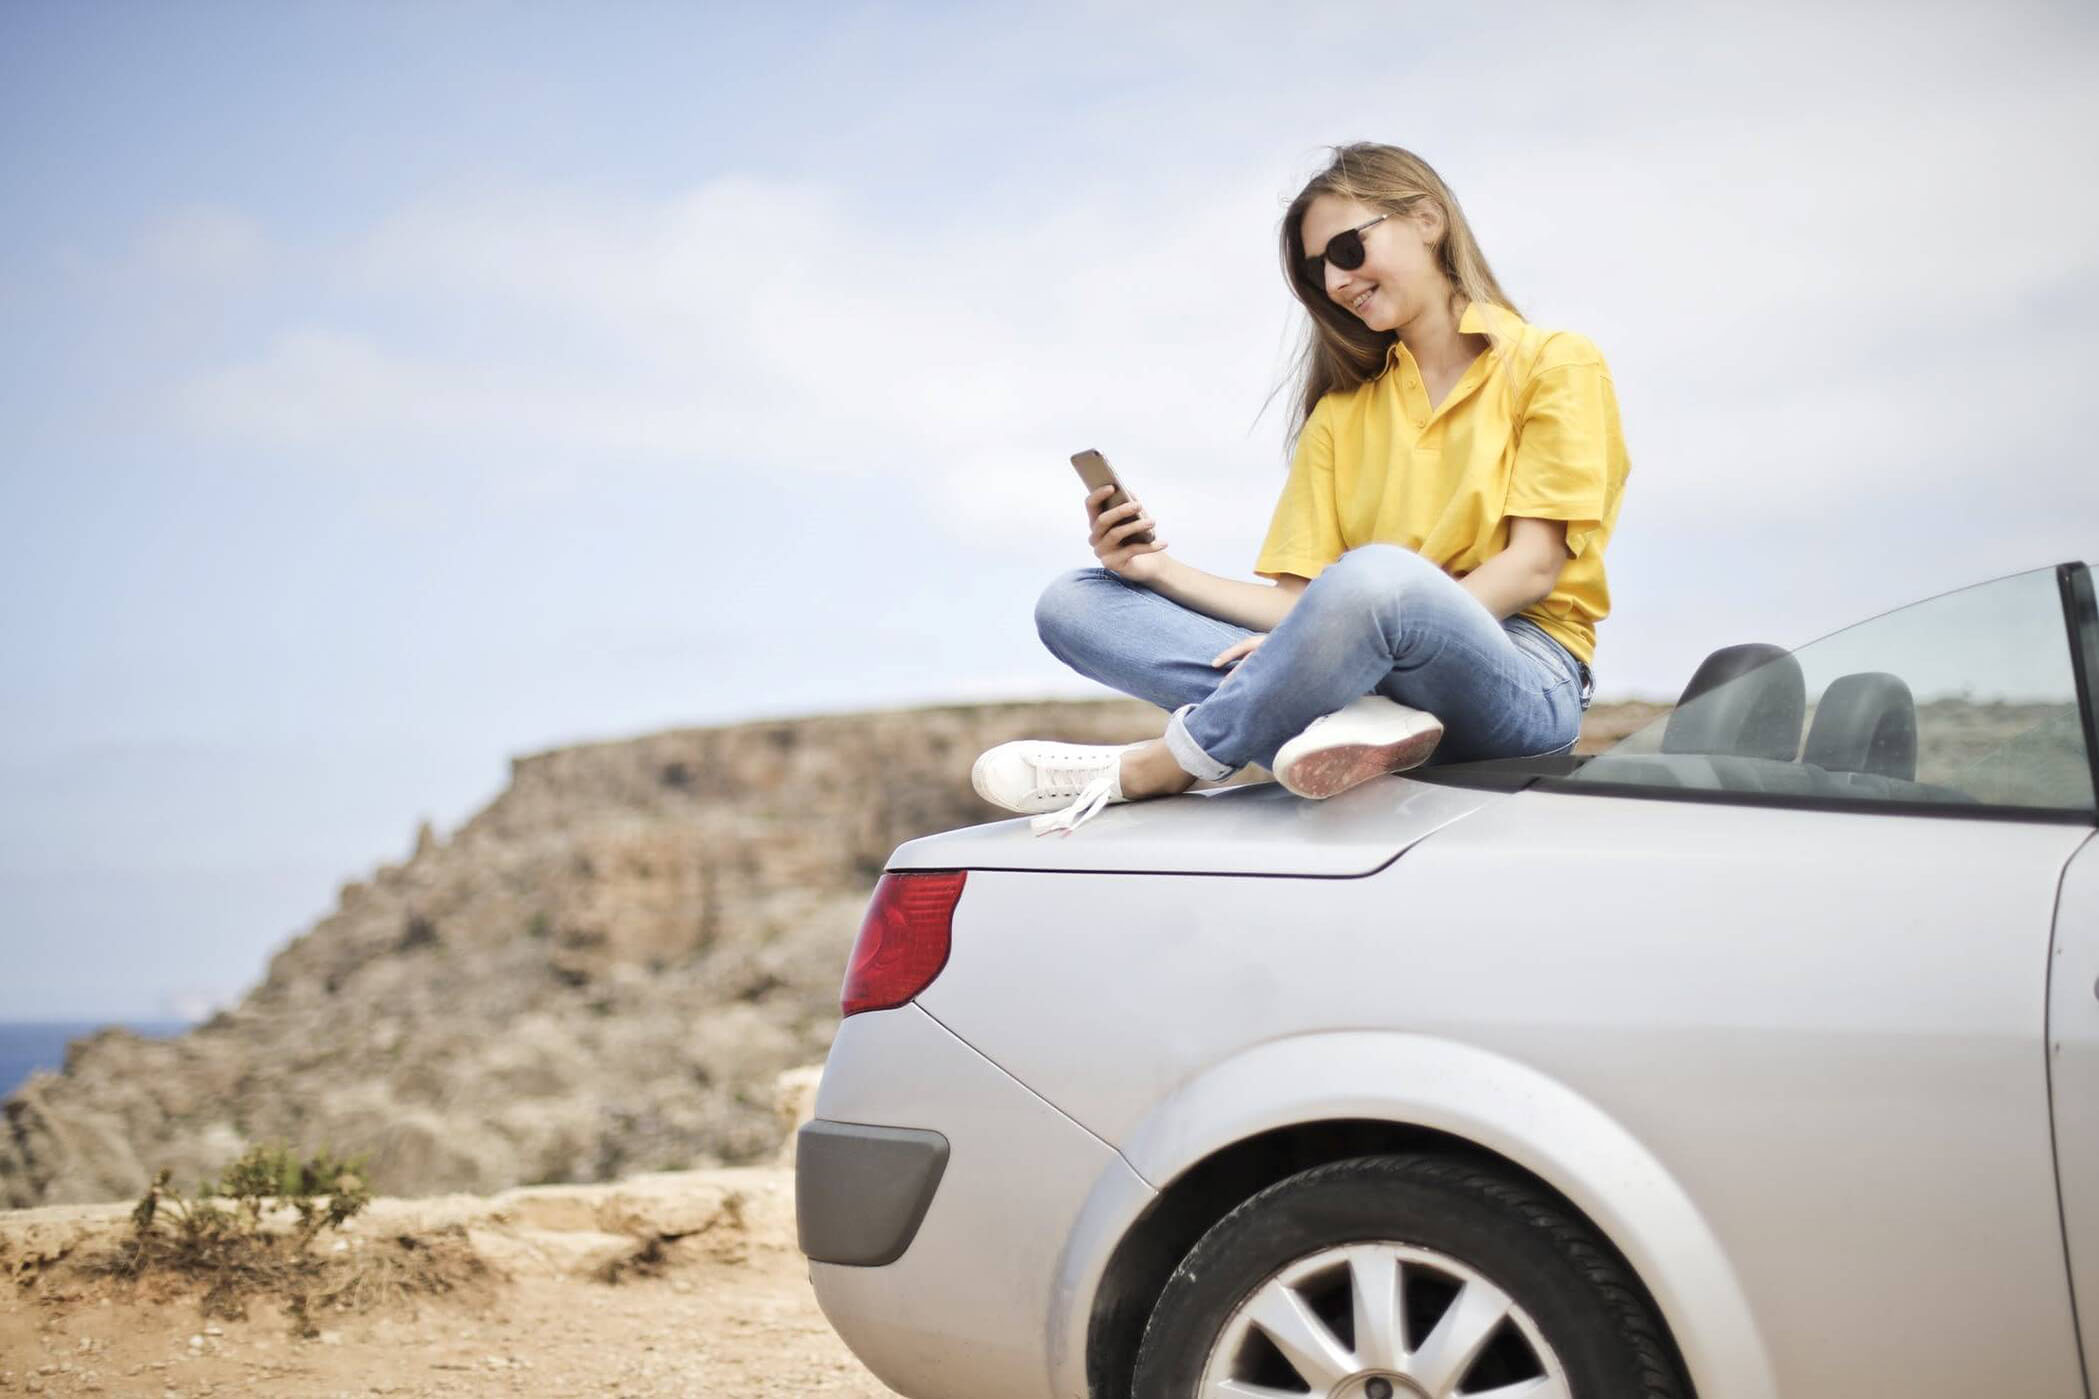 Girl Preparing Road Trip on Car